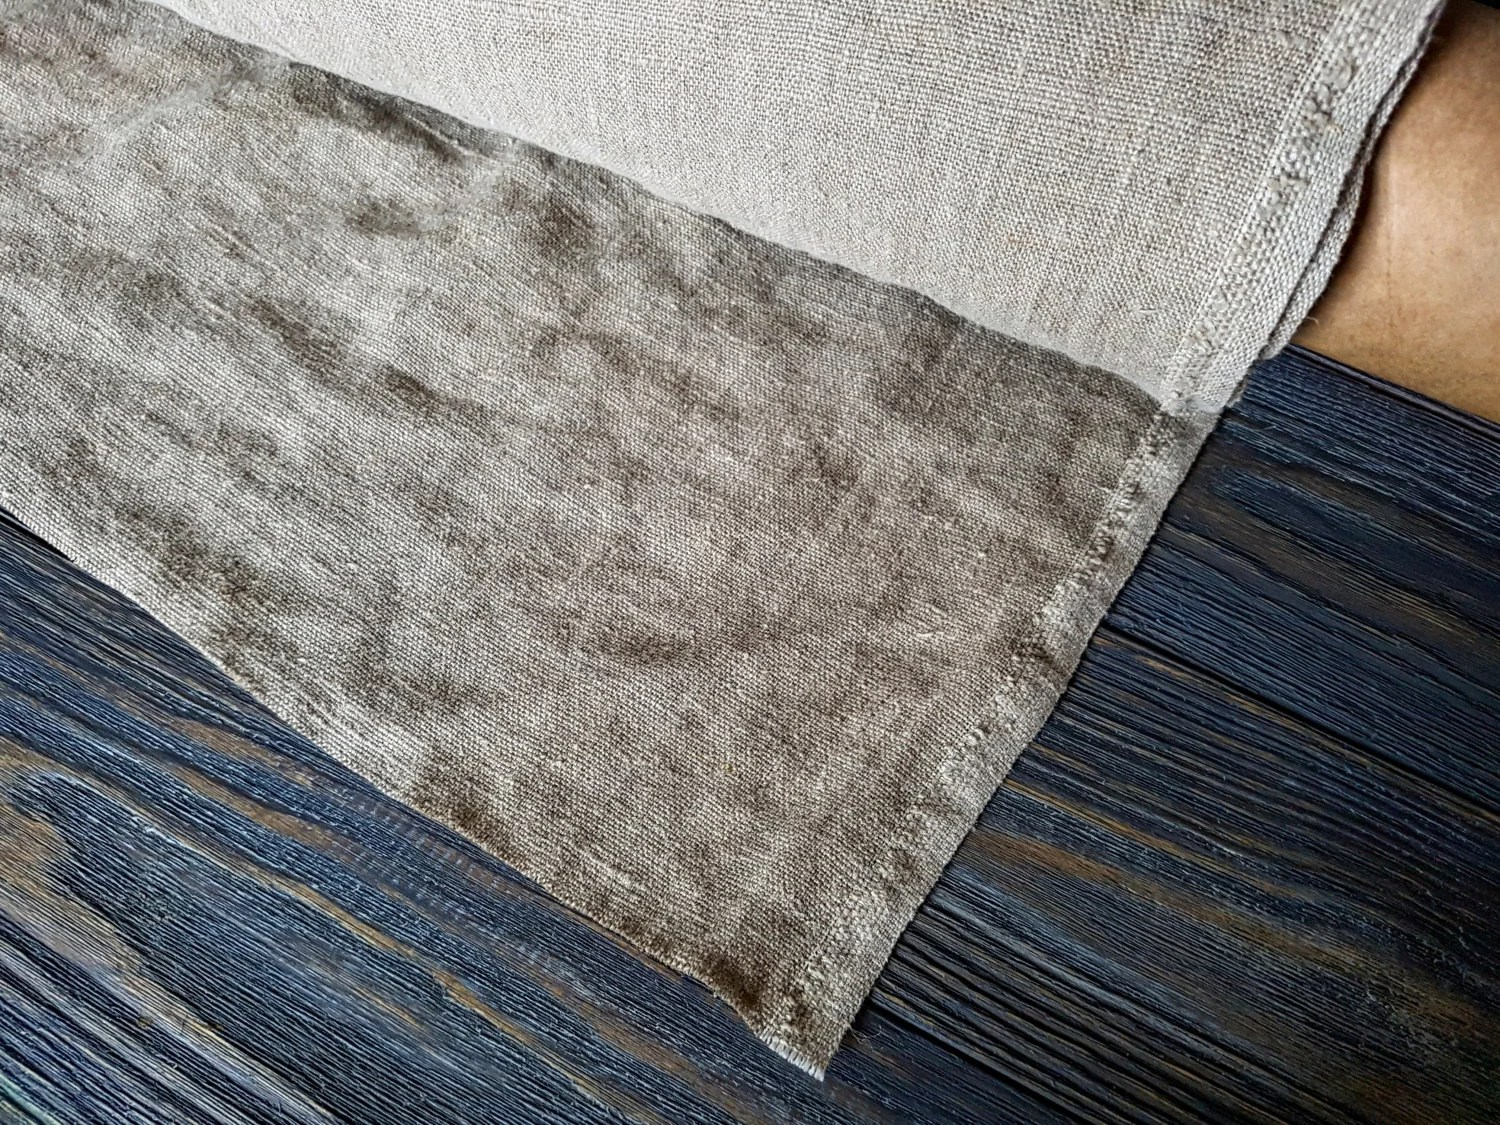 Rustic Upholstery Fabric Rough Linen Fabric By The Meter, Stonewashed Linen Fabric